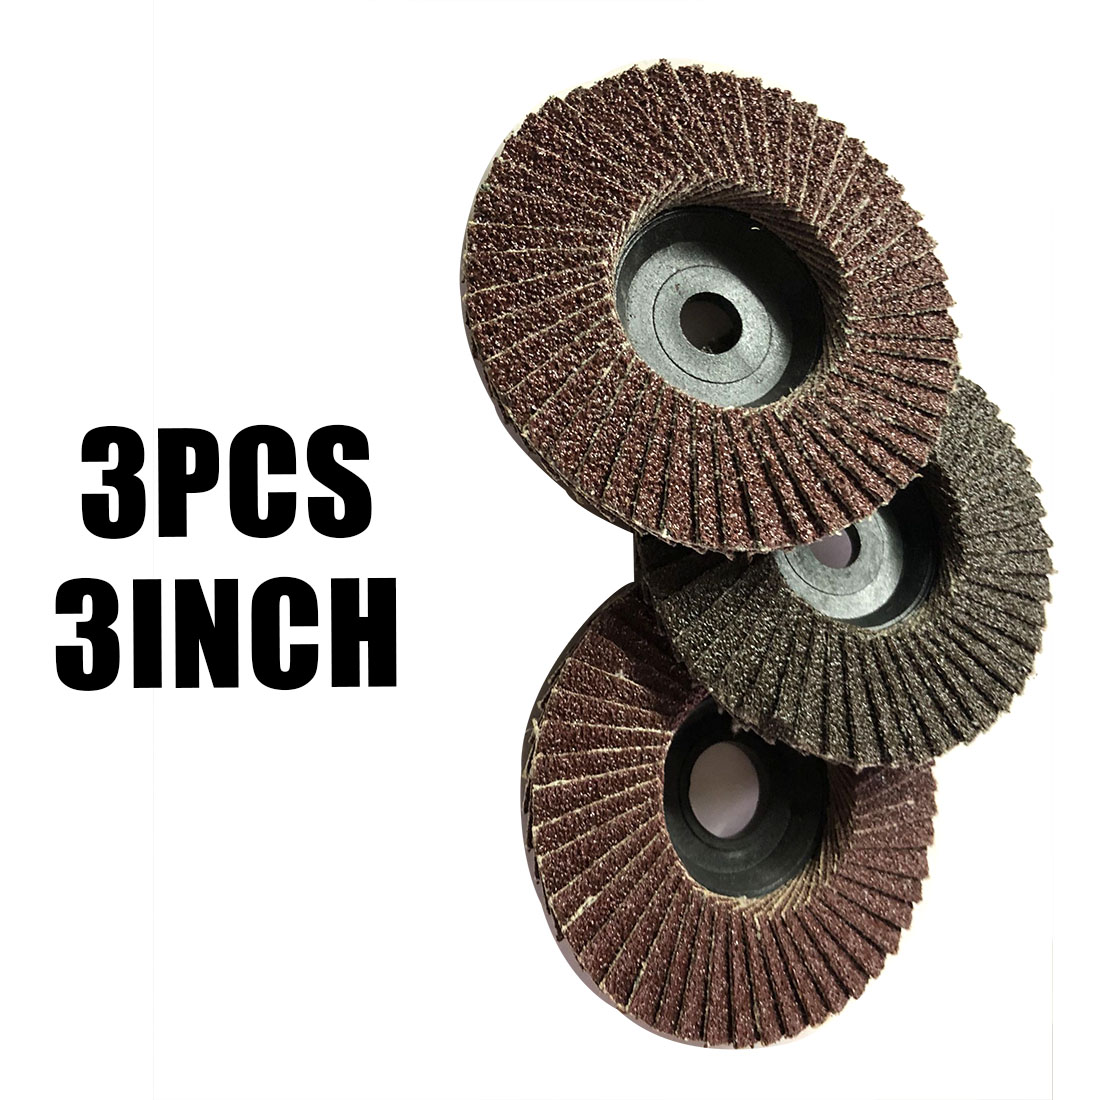 3pcs 75mm 3-Inch Flap Sanding Disc Angle Grinder Discs Metal Grinding Wheel Efficient And Low Consumption